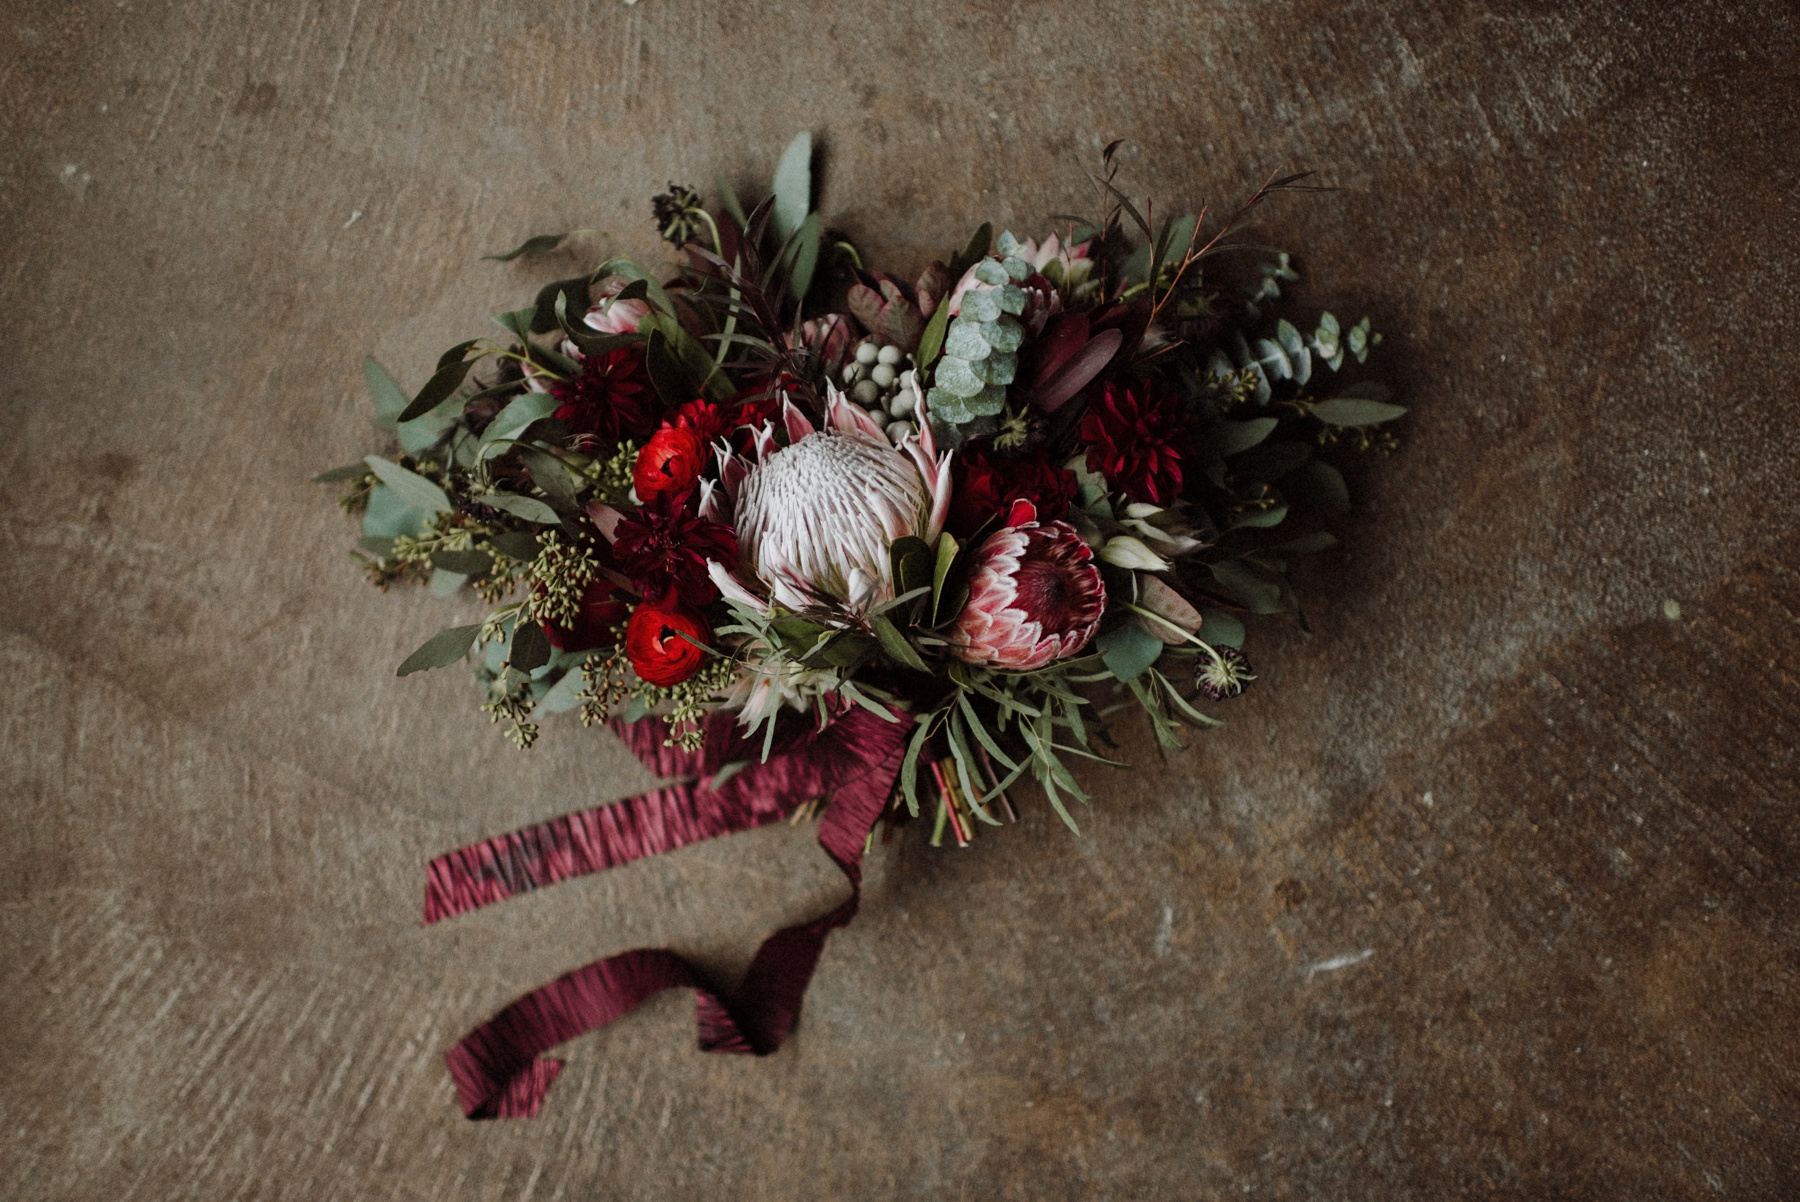 Bohemian industrial wedding at Coppes Commons in Nappannee, Indiana by The Colagrossis, Destination Wedding PhotographersBohemian industrial wedding at Coppes Commons in Nappannee, Indiana by The Colagrossis, Destination Wedding Photographers